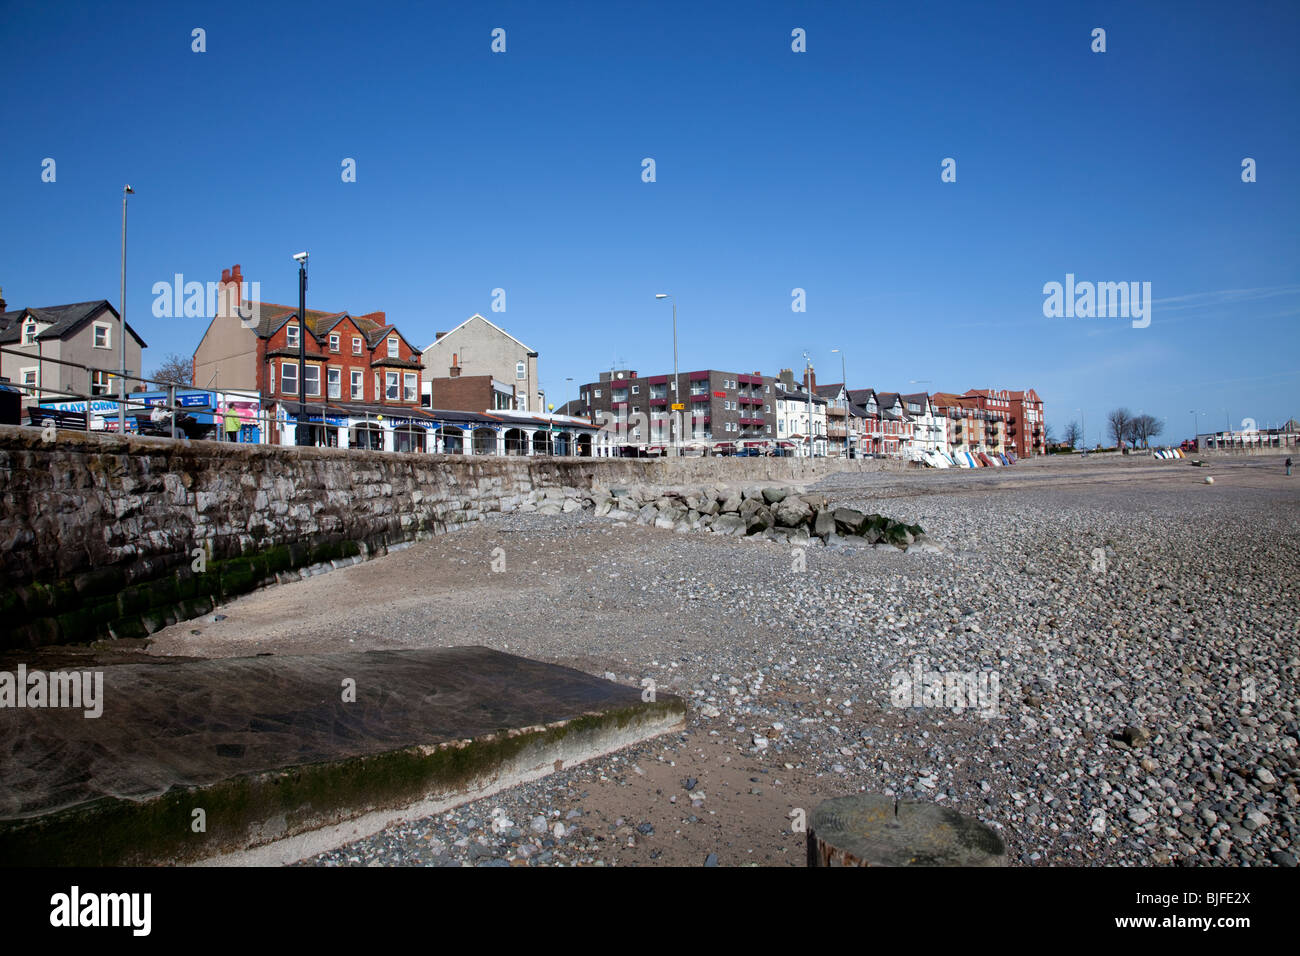 Rhos on Sea, North Wales seafront shops and accommodation viewed from the beach within a rocky breakwater Stock Photo